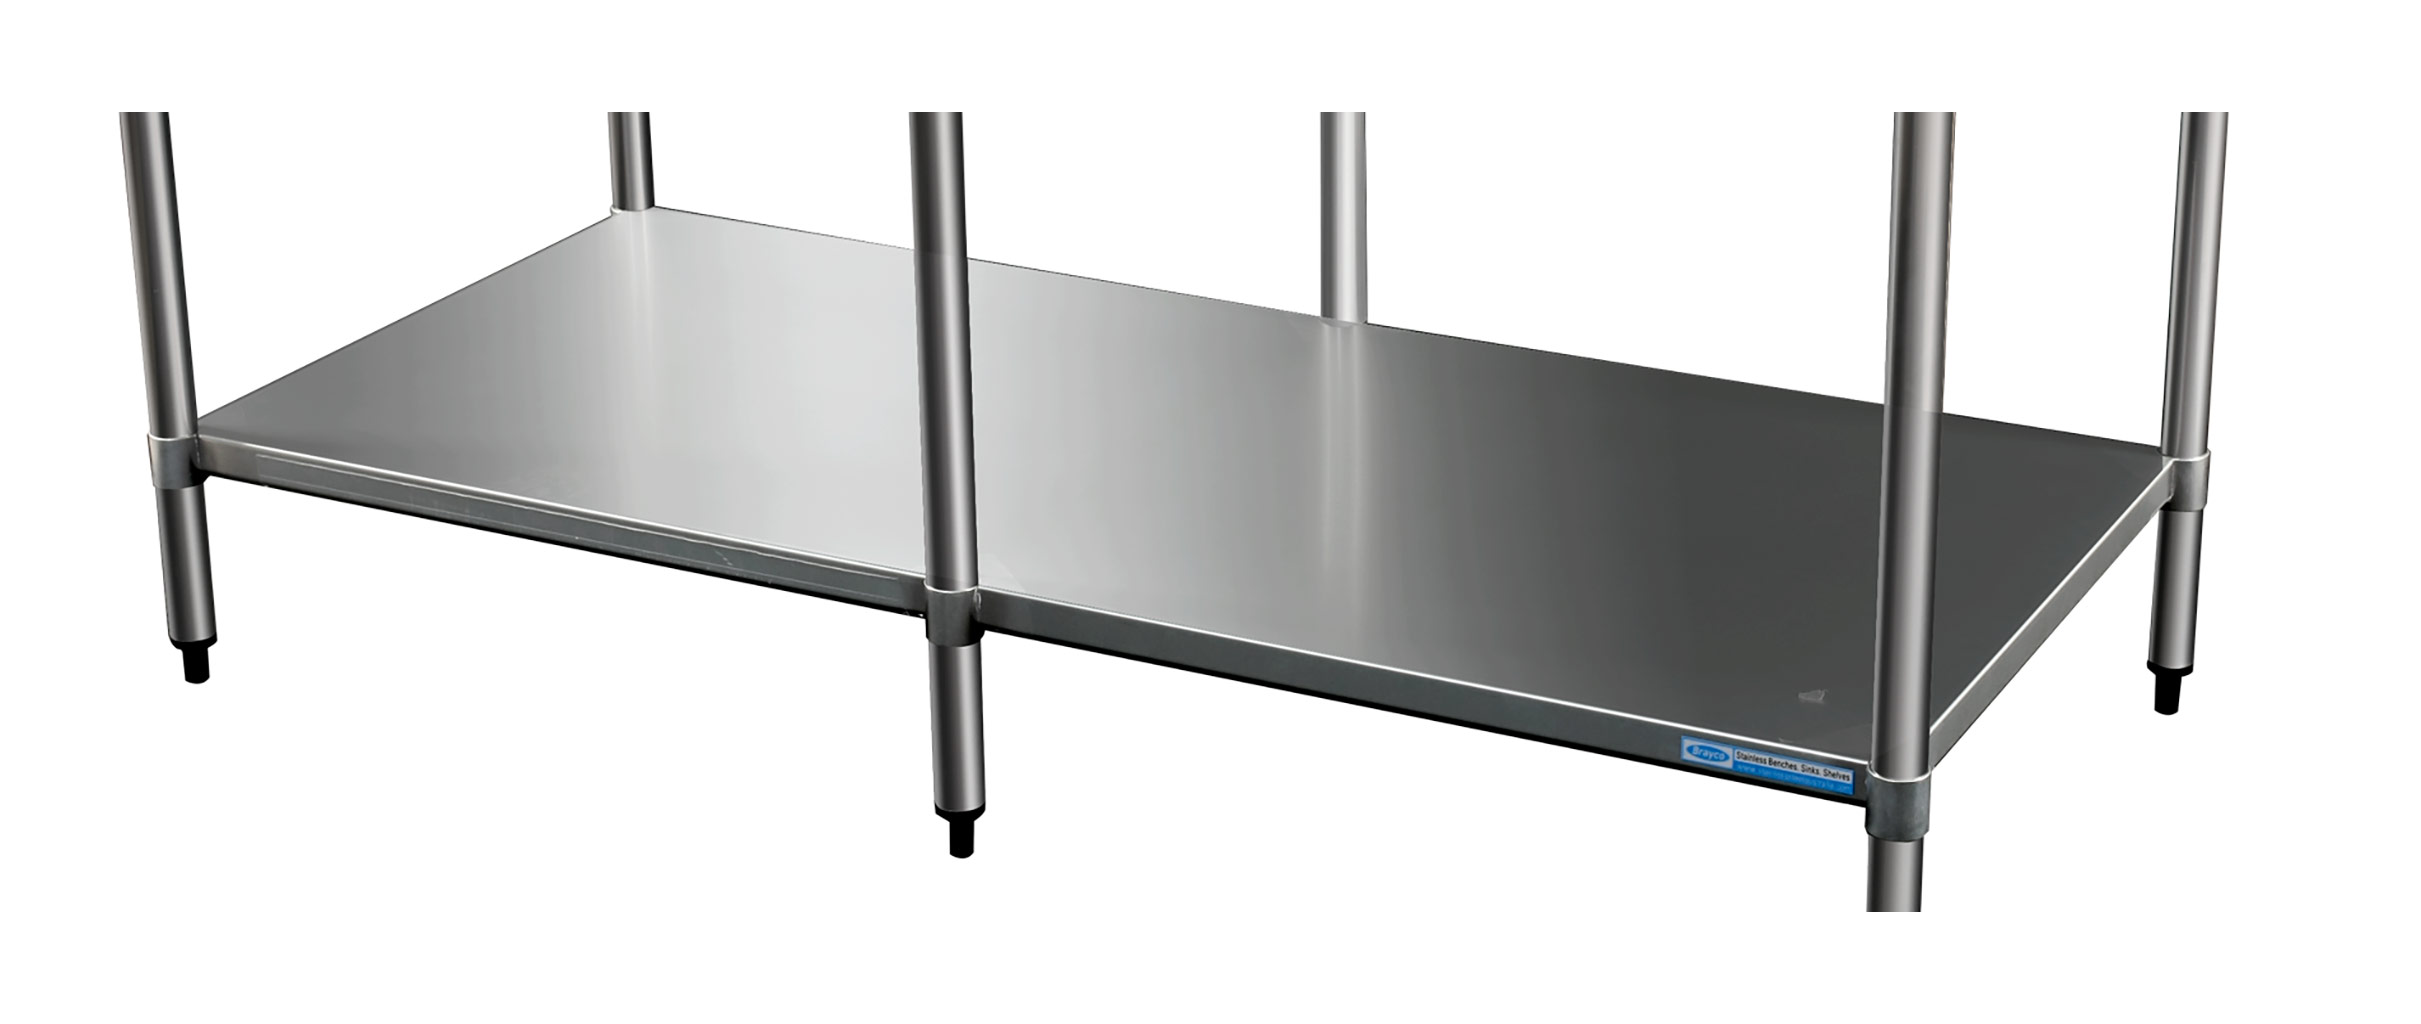 Stainless Undershelf for 3636 Bench-0